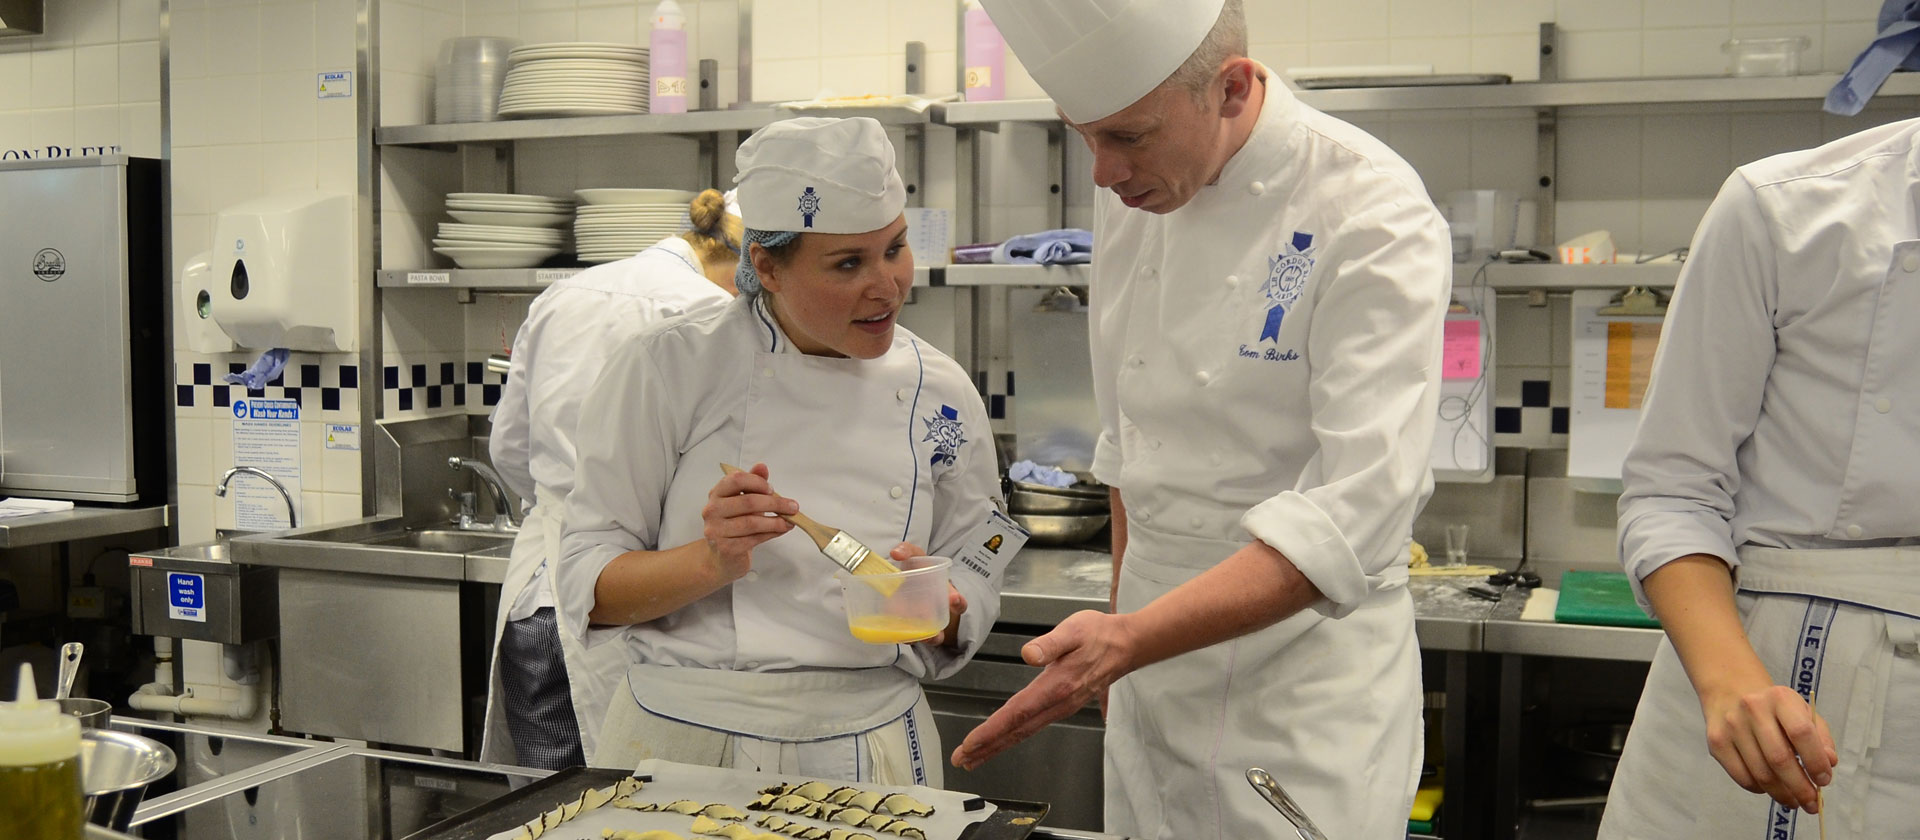 Cuisine Chef Tom Birks - le cordon bleu london